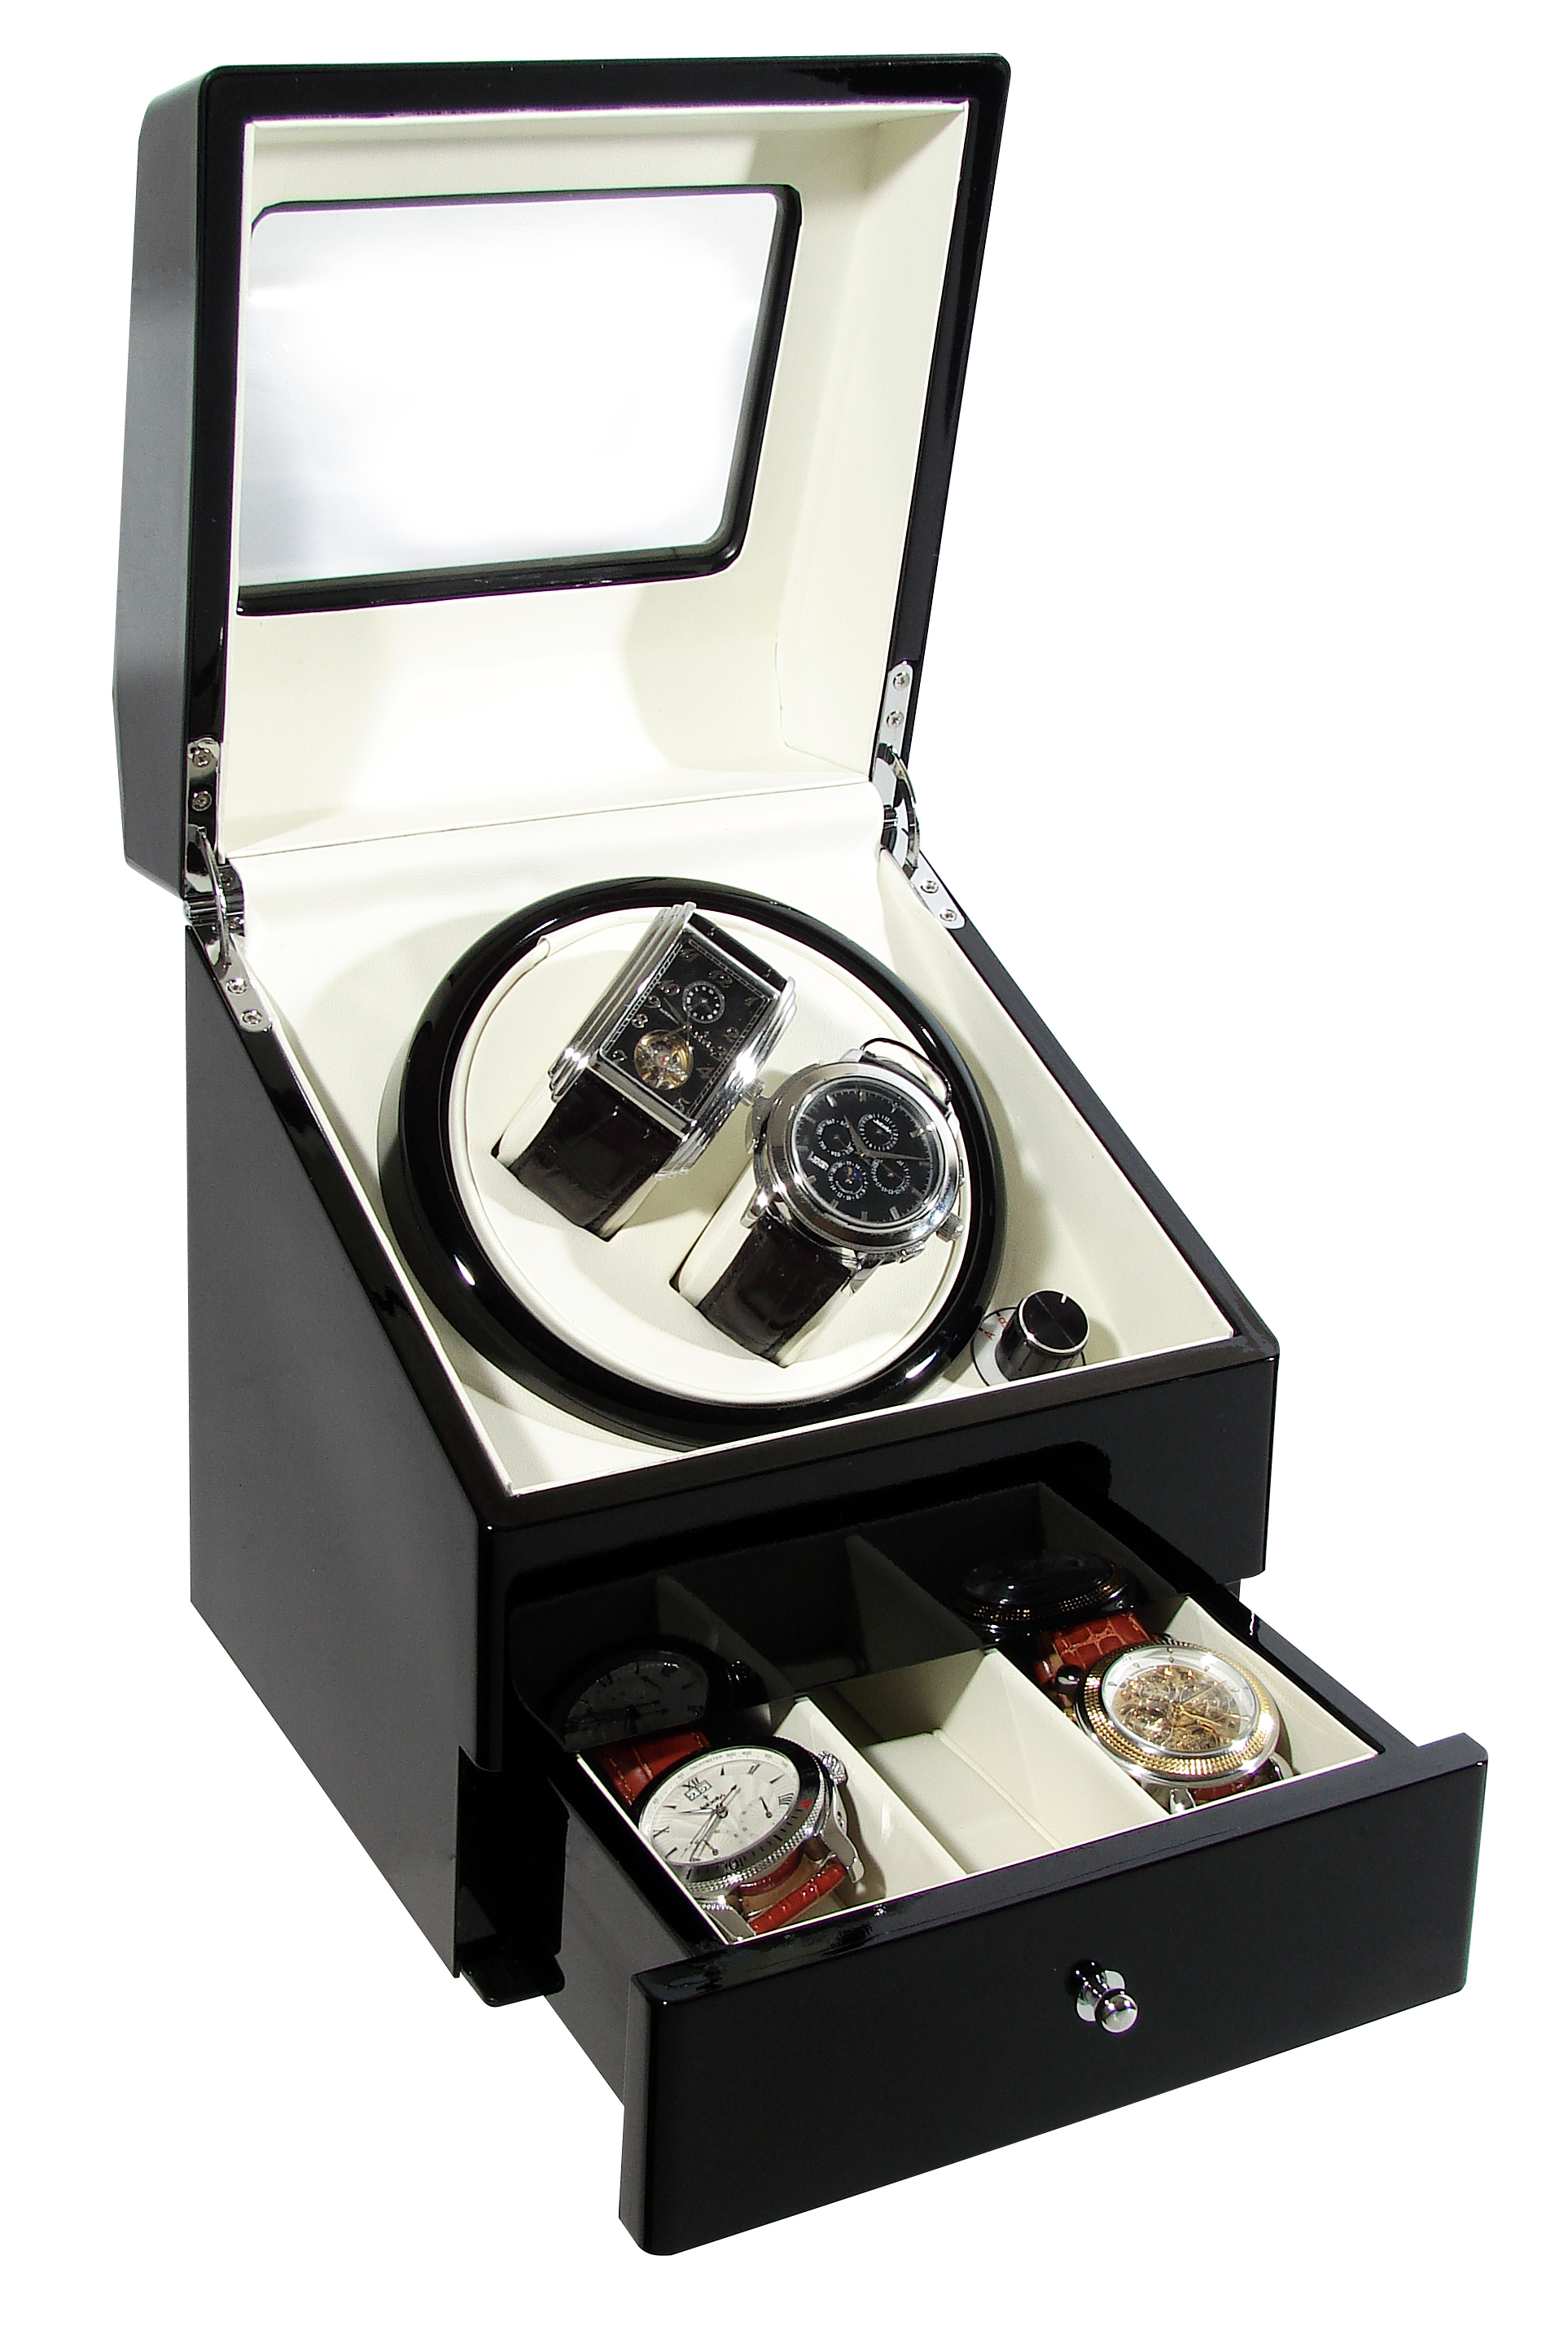 The CKB Ltd ® Time Tutelary Deluxe Automatic Double Watch ...